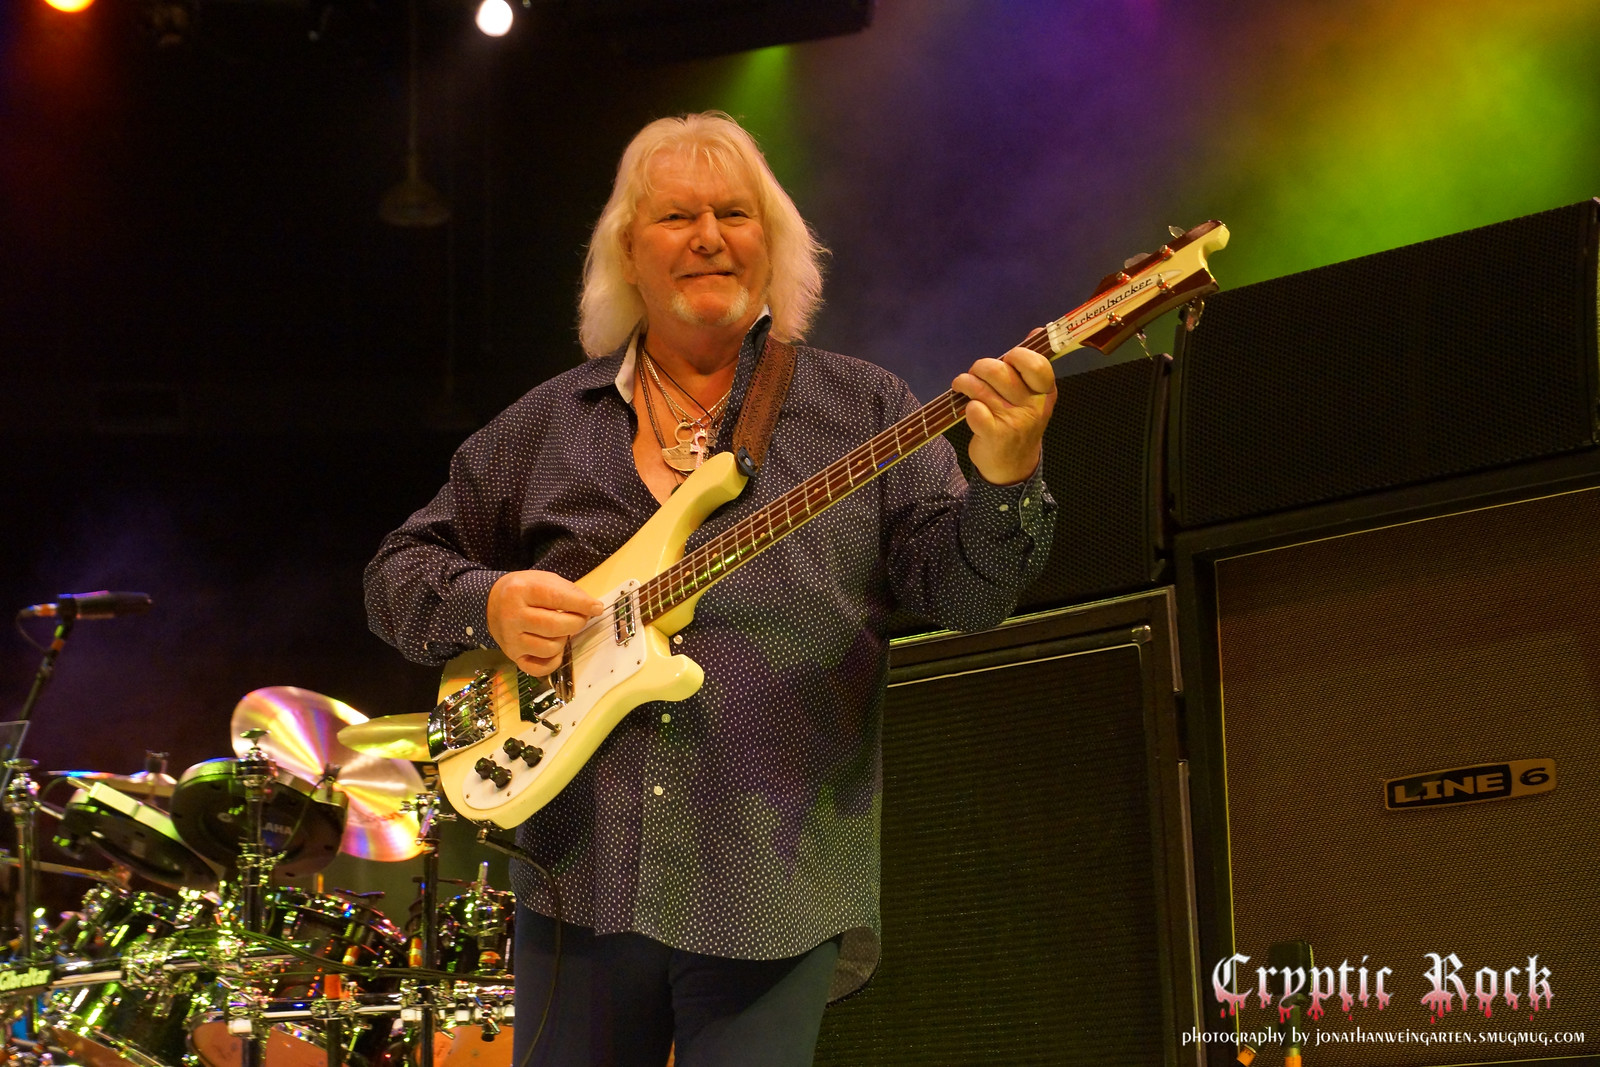 dsc09227 x3 - Remembering Chris Squire of YES - Bass Innovator & Legend